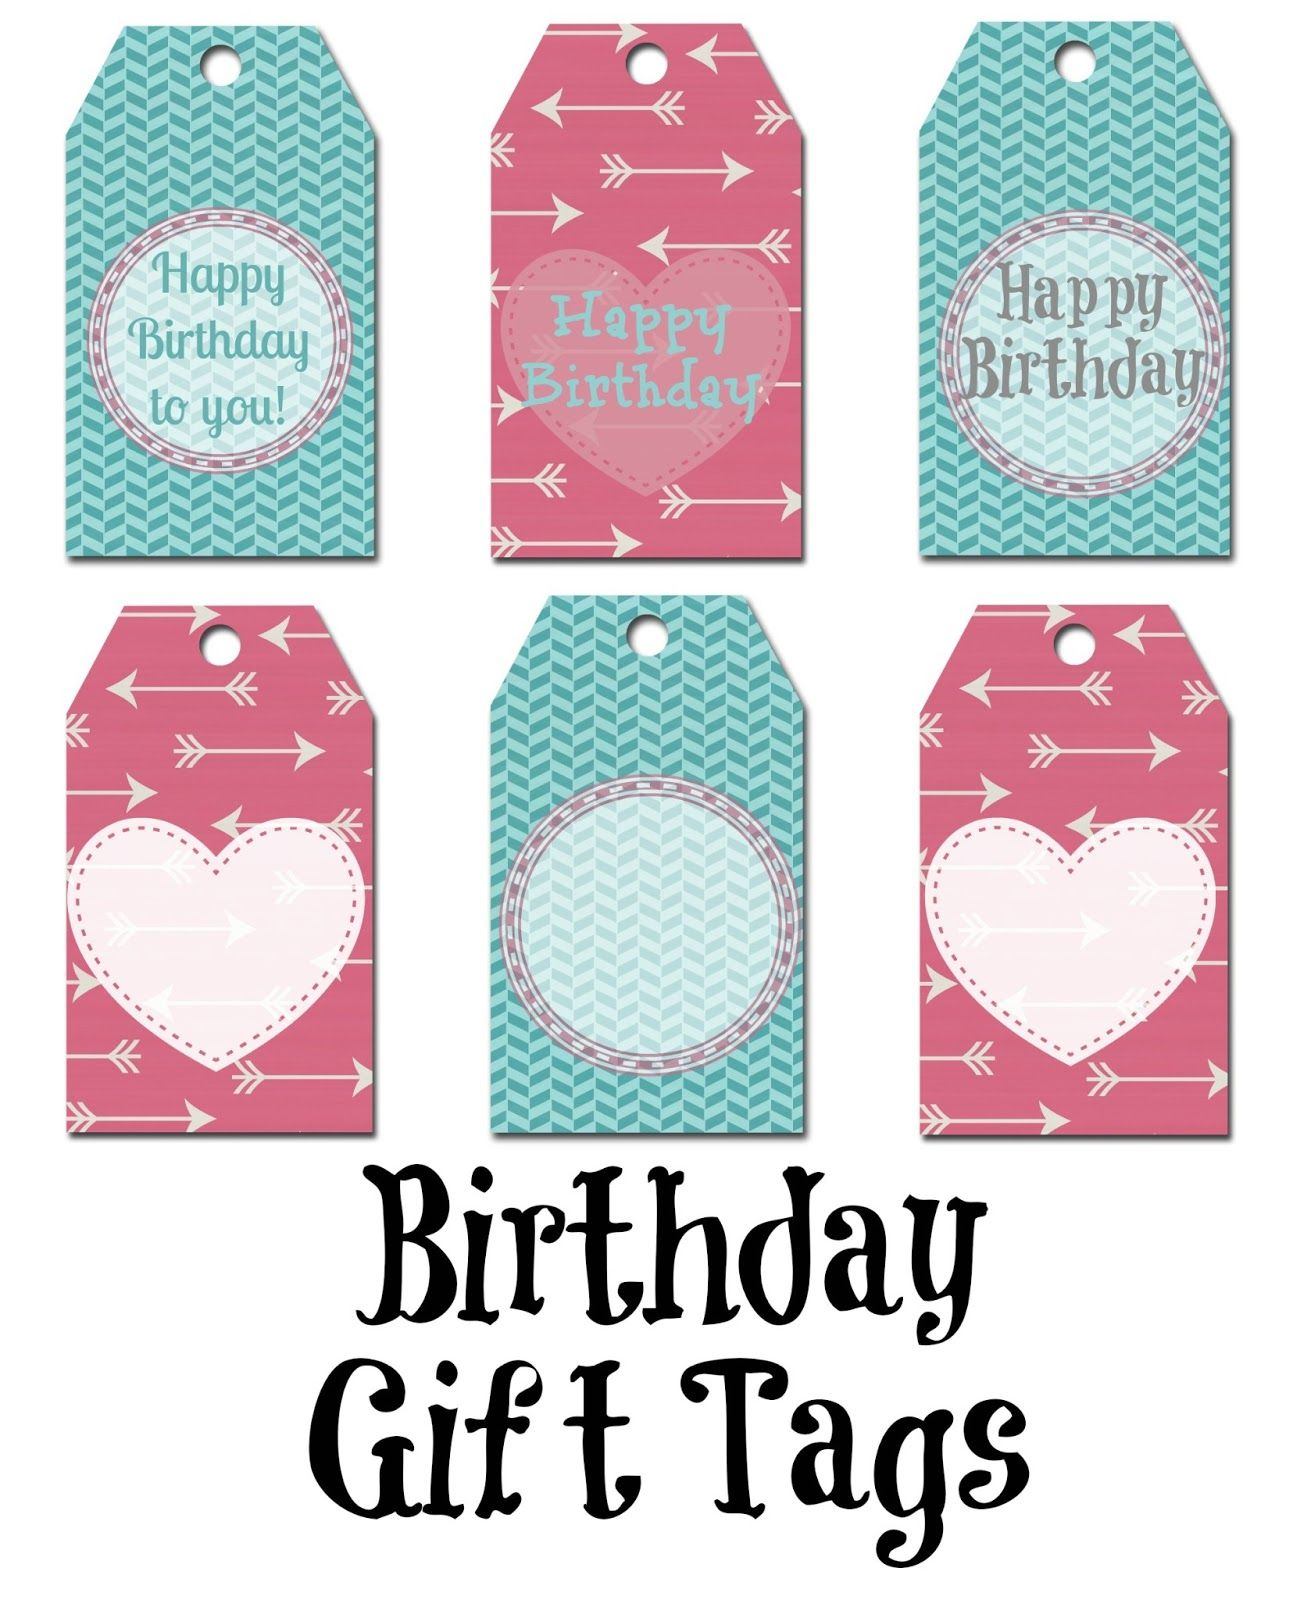 Happy birthday gift tag gift tags pinterest gift tags free printable happy birthday gift tag negle Gallery